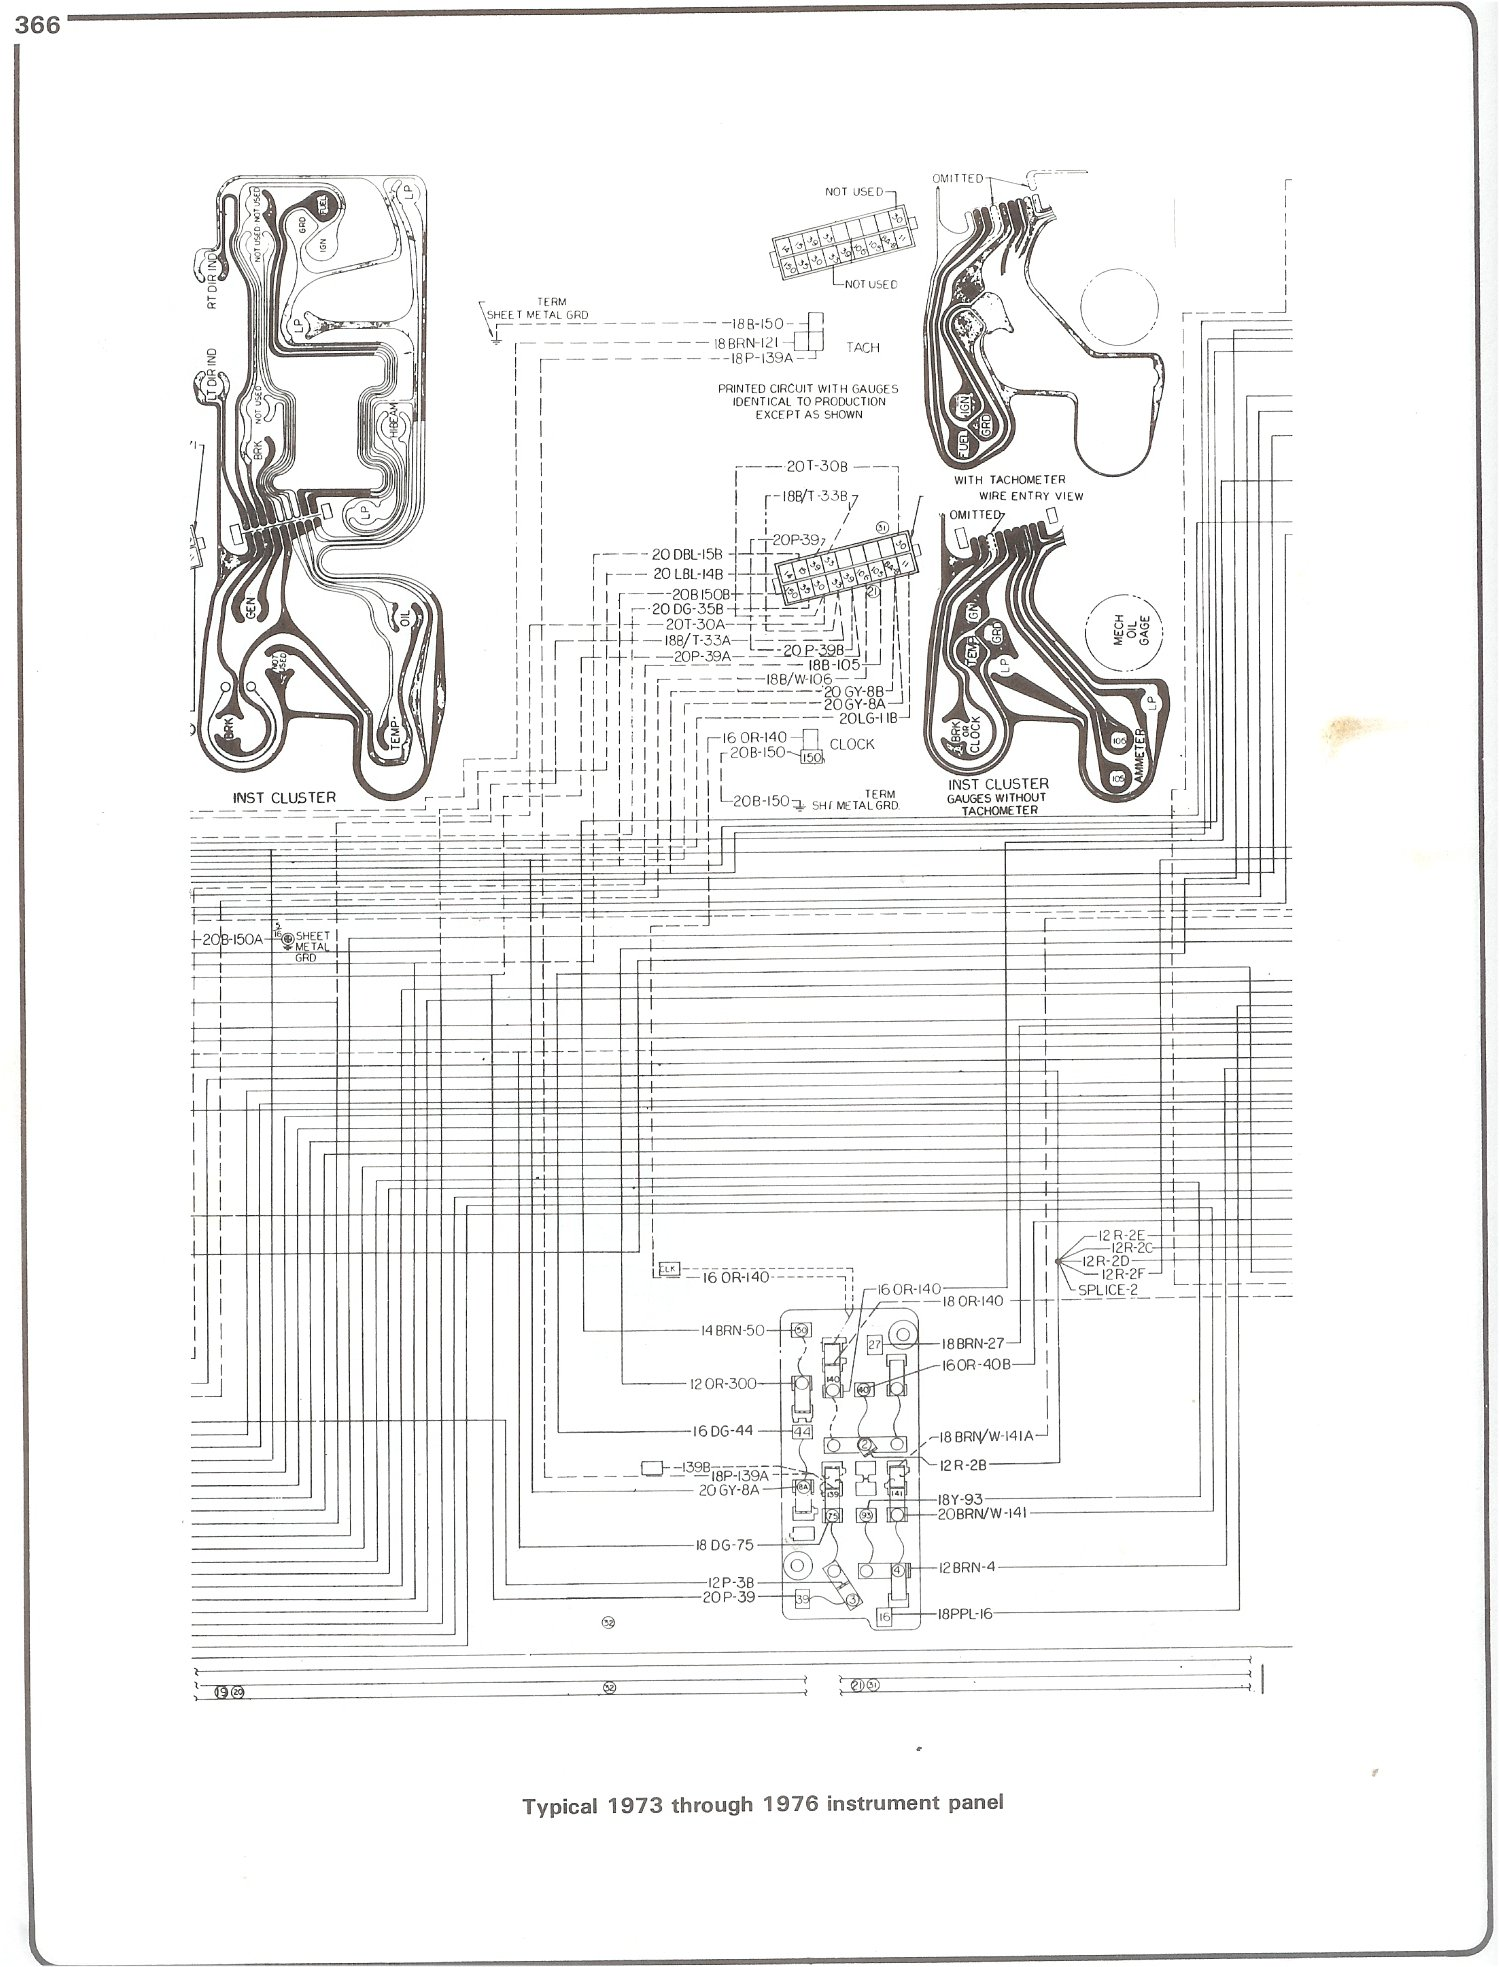 pustar Cm4200 Wiring Diagram furthermore Sno Way Truck Wiring Diagram as well Vacuum Diagram 19478 as well Engine  partment Wiring Diagram Chevrolet Truck as well Gm L03 Engine. on chevy truck wiring diagram